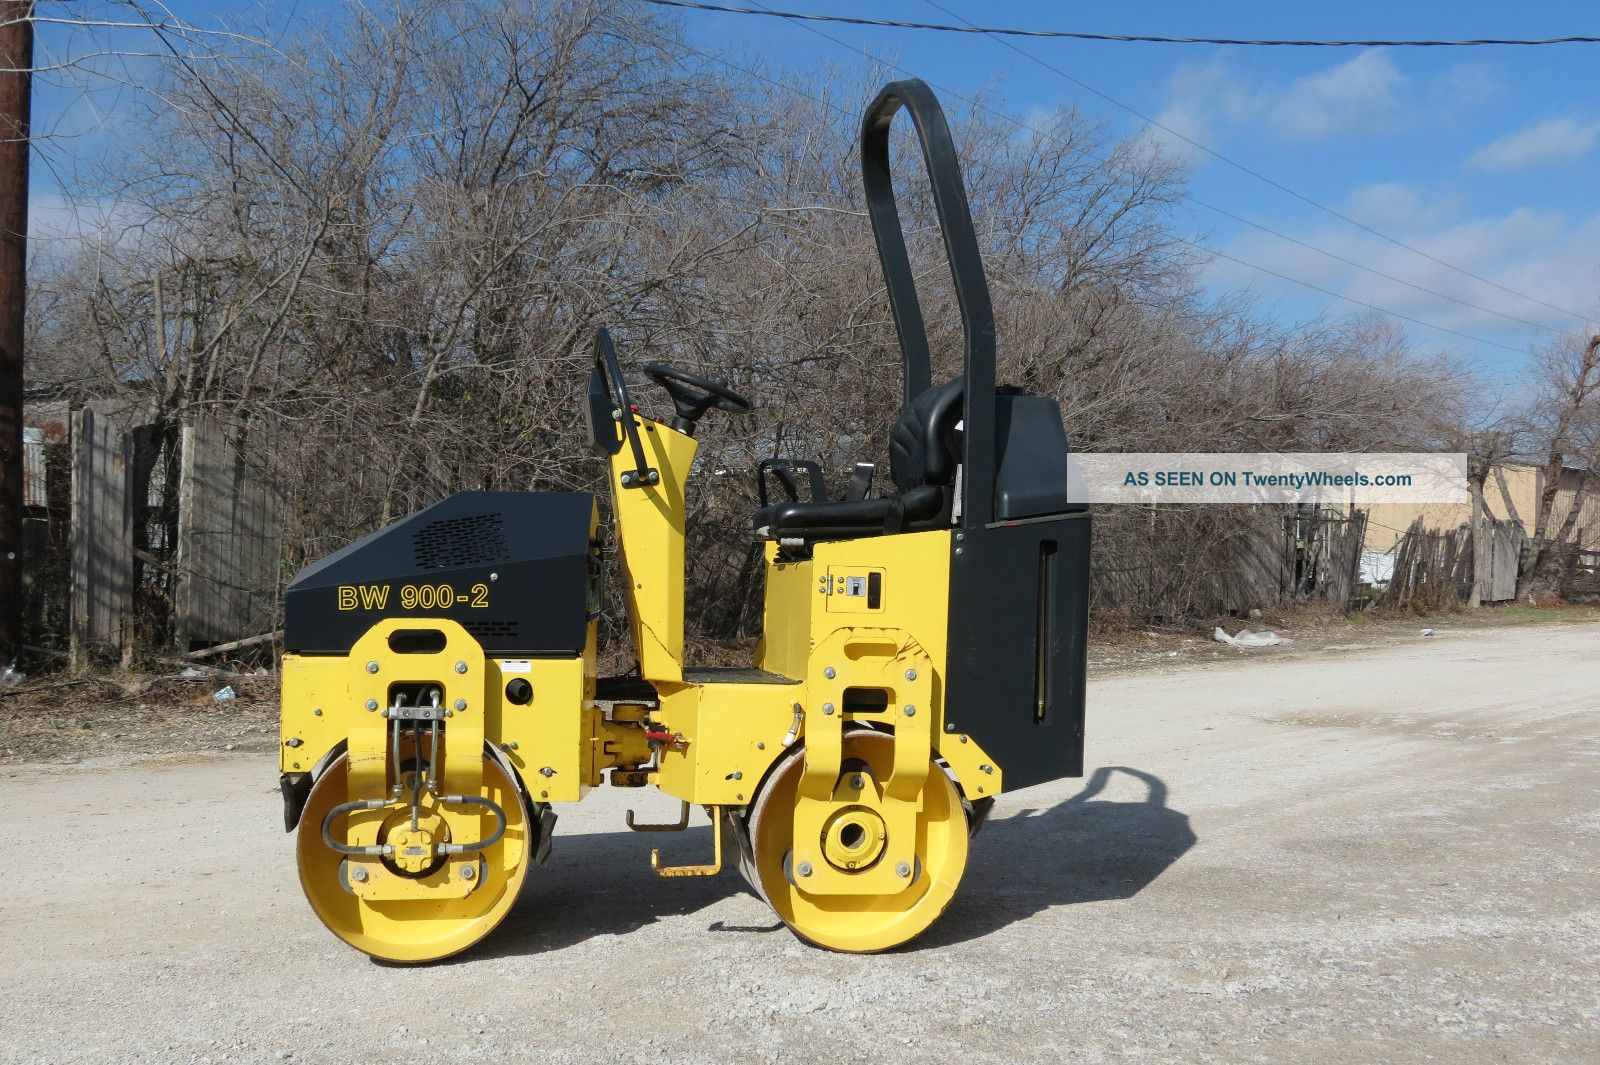 2010 Bomag Bw900 - 2 Compactor Roller Vibratory Smooth Drum 124 Hours Dfw Texas Compactors & Rollers - Riding photo